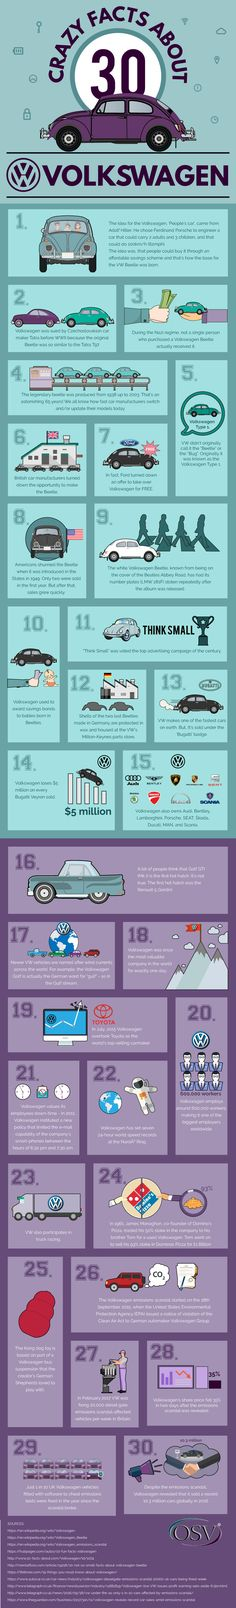 Volkswagen has been in the media a lot in the past couple of years, and not always for good reasons. The brand has a rich history though. This infographic from OSV takes a look a few interesting facts about Volkswagen: Volkswagen Bus, Vw Camper, Shocking Facts, Fascinating Facts, Interesting Facts, Car Facts, Vw Classic, Vw Vintage, Vw Cars